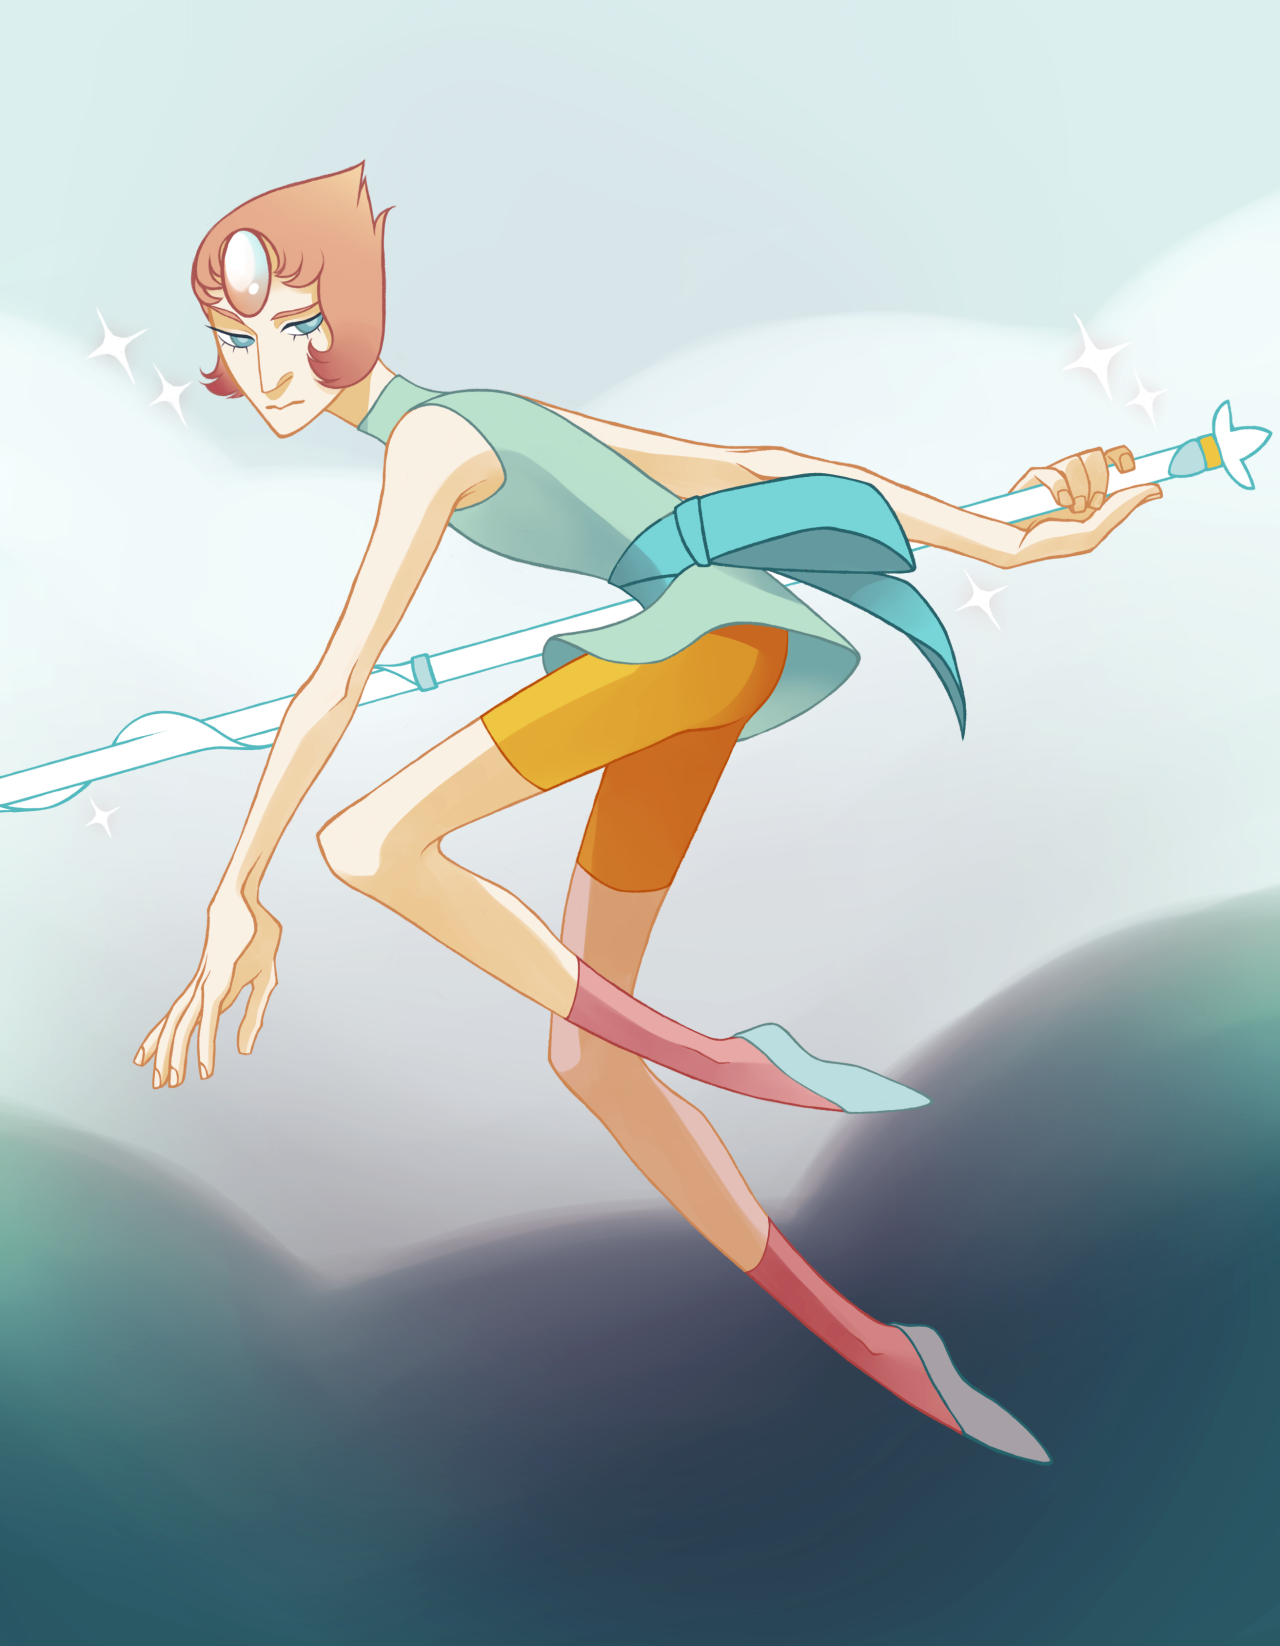 i've been working a lot of overtime lately, which is super draining…. so I needed to draw something self-indulgent. here's a pearl. i relate to her a lot, and also i love girls with swords lmao.